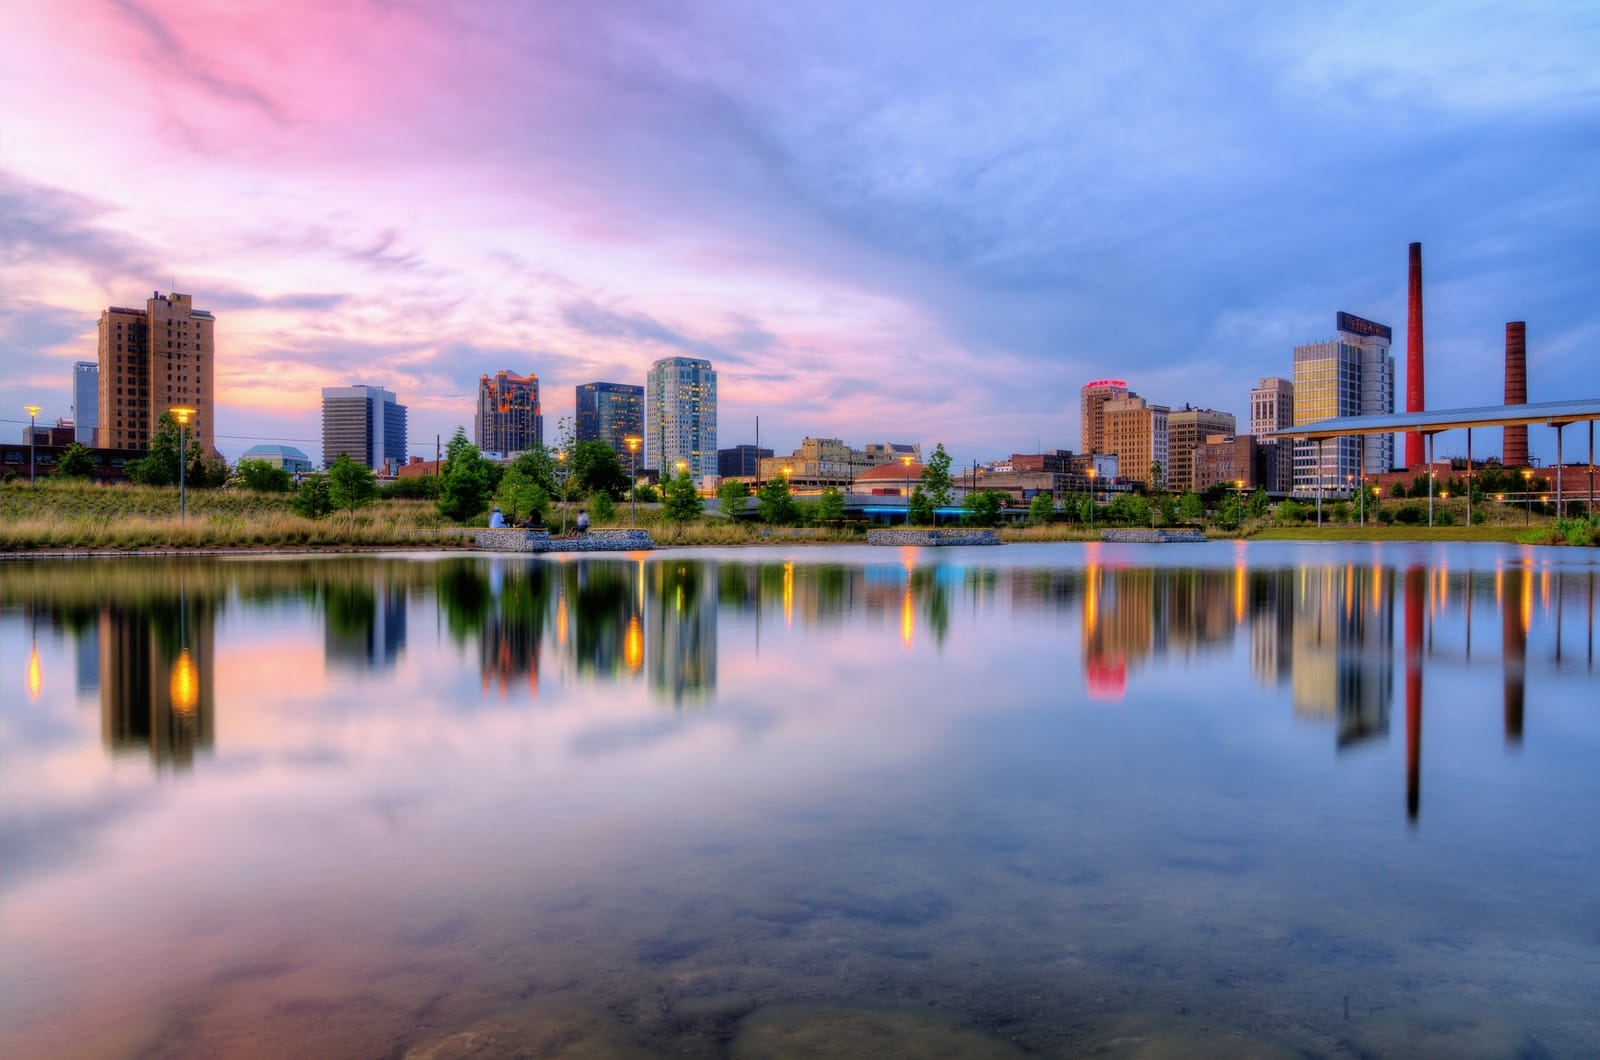 landscape photography of cityscape by water